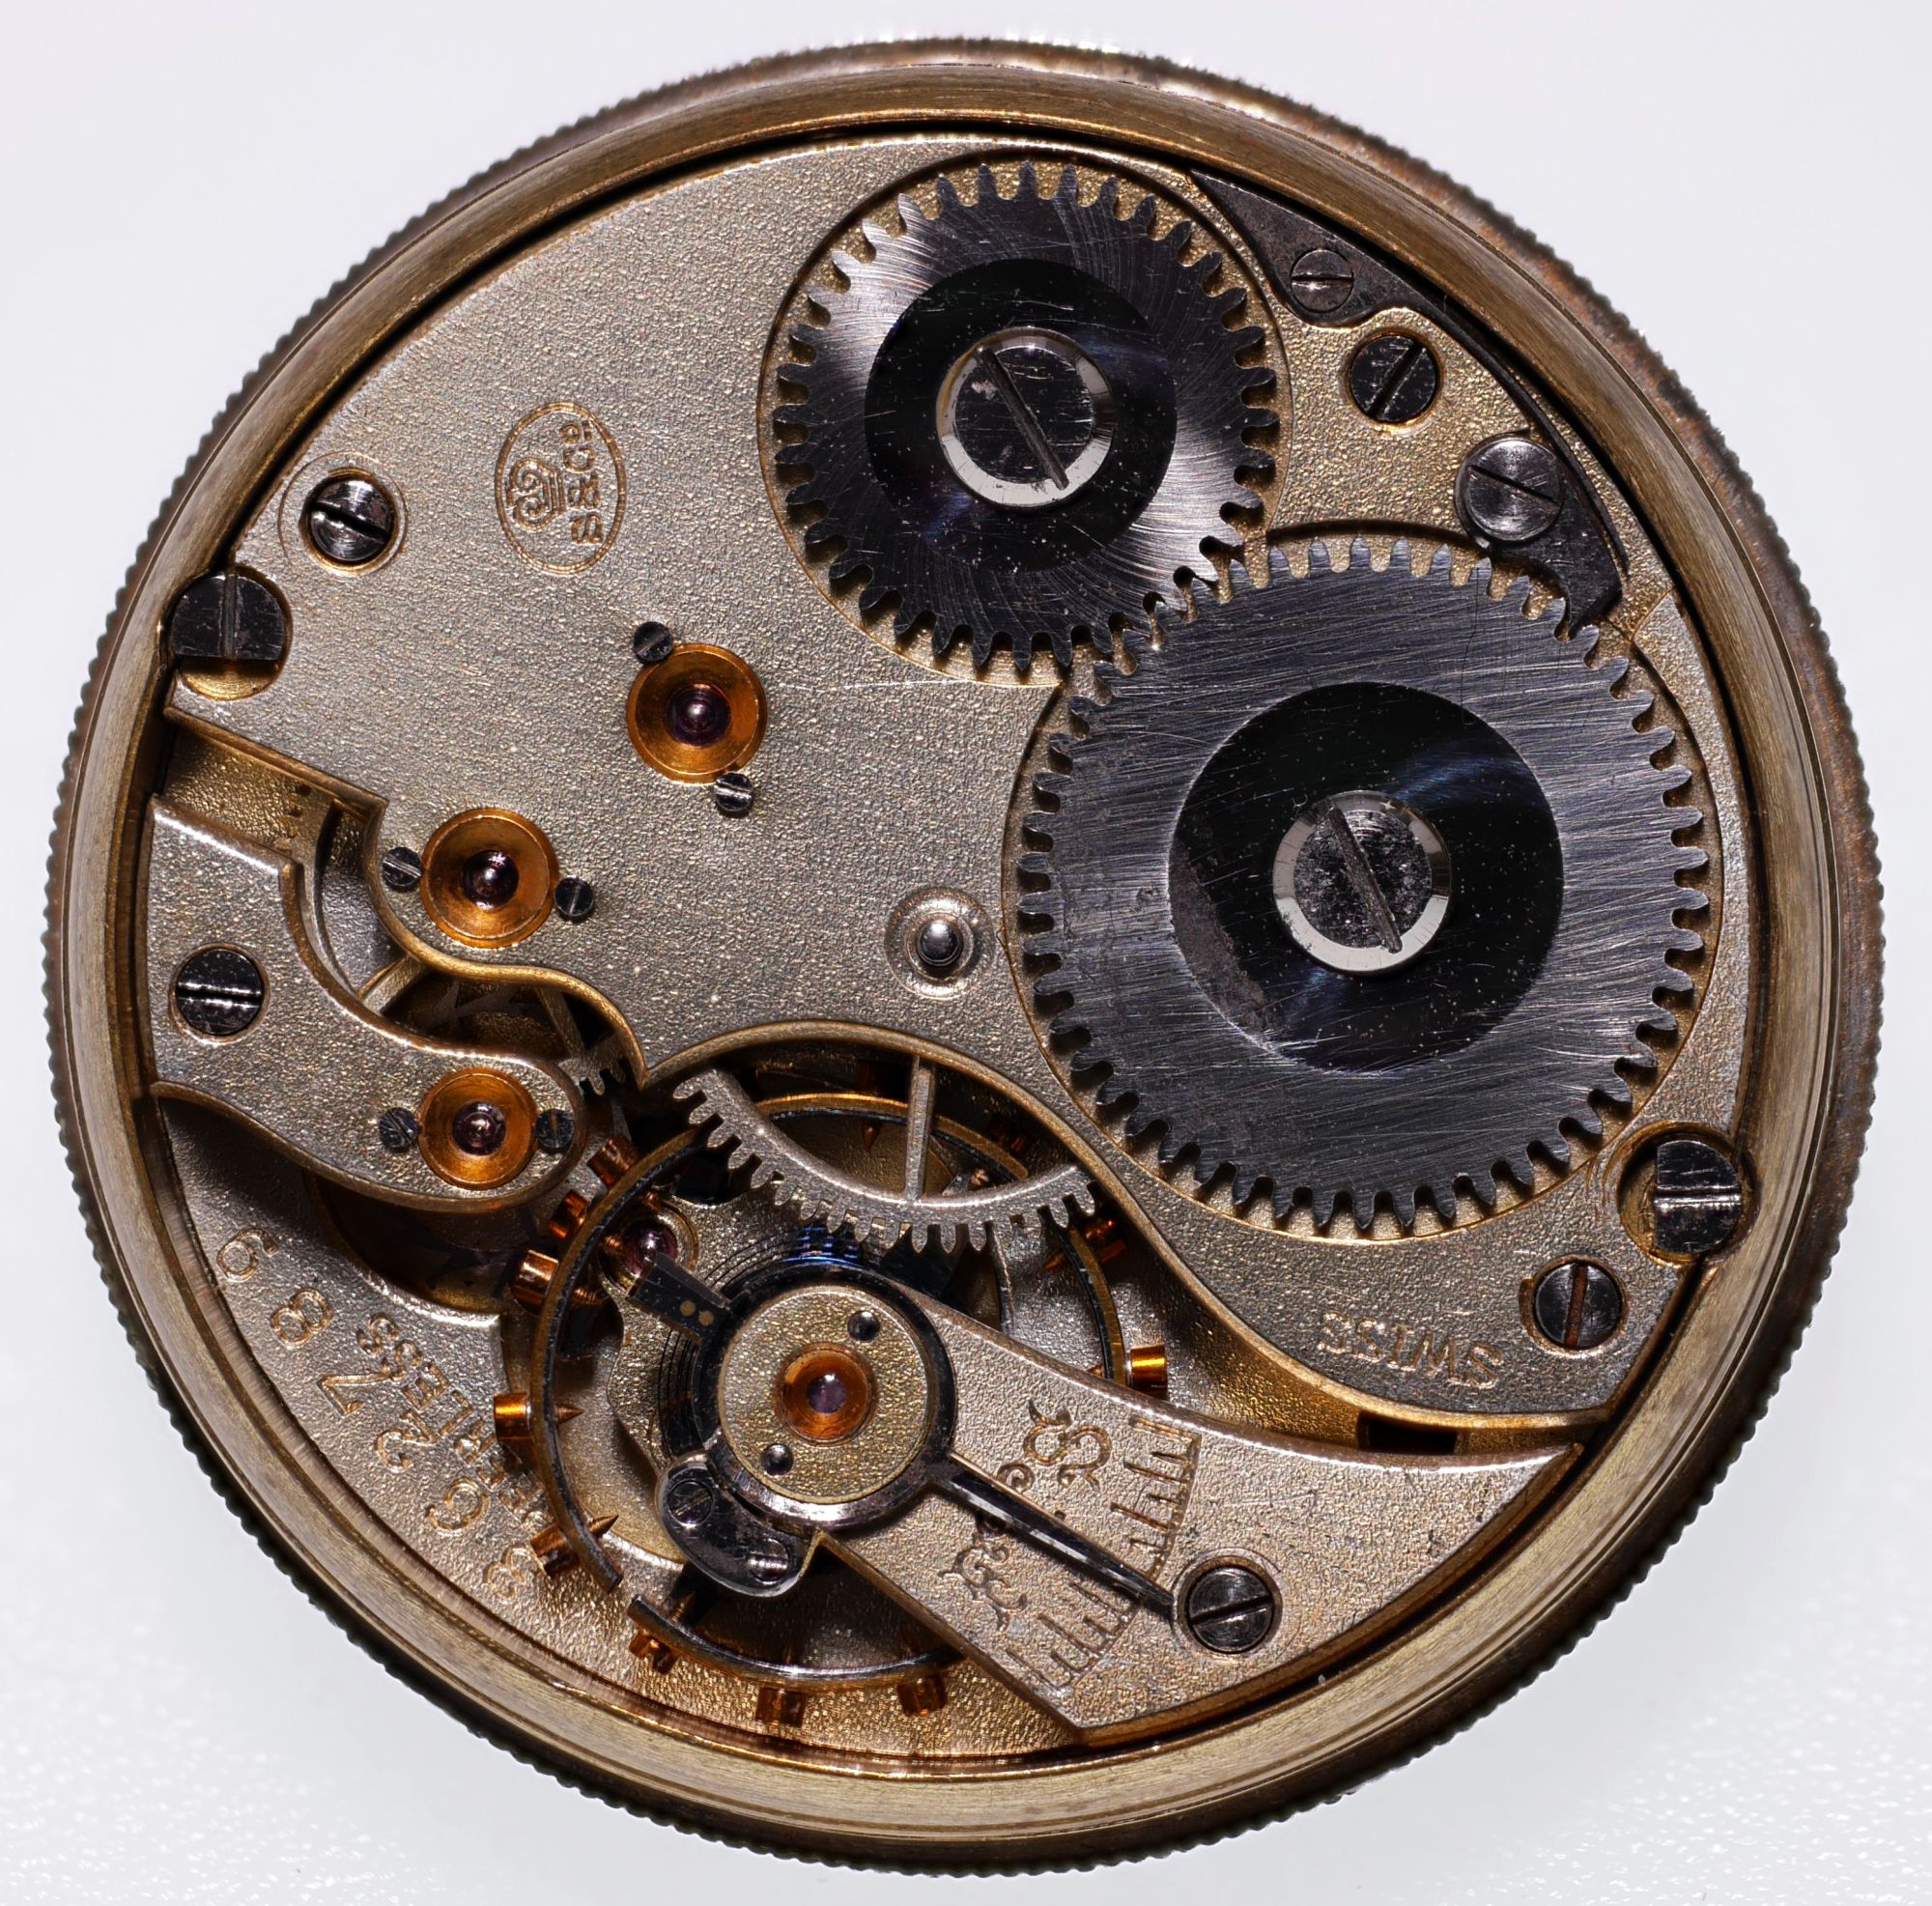 IWC Calibre 64 Movement